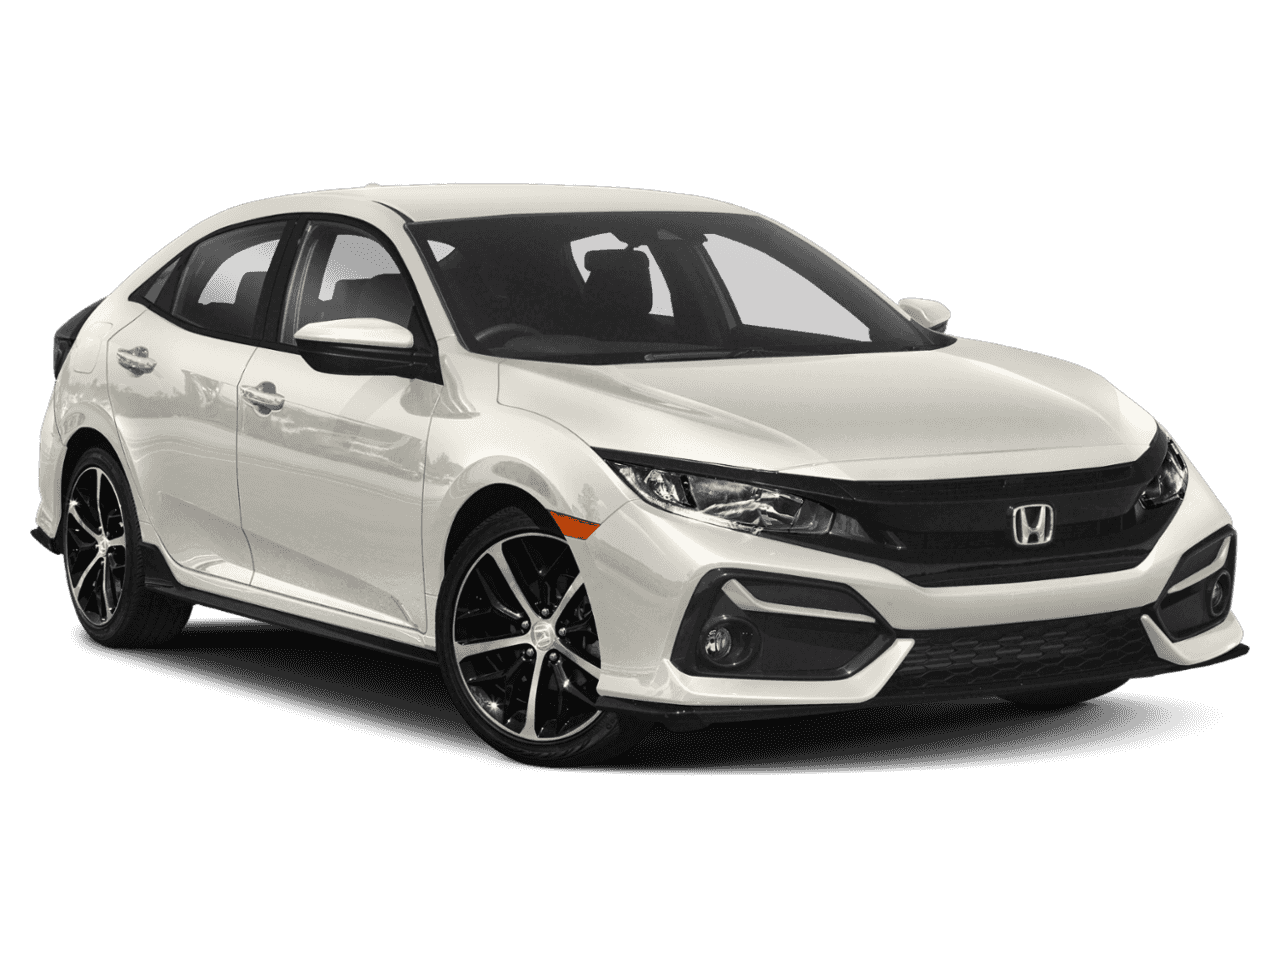 New 2020 Honda Civic Hatchback Sport CVT